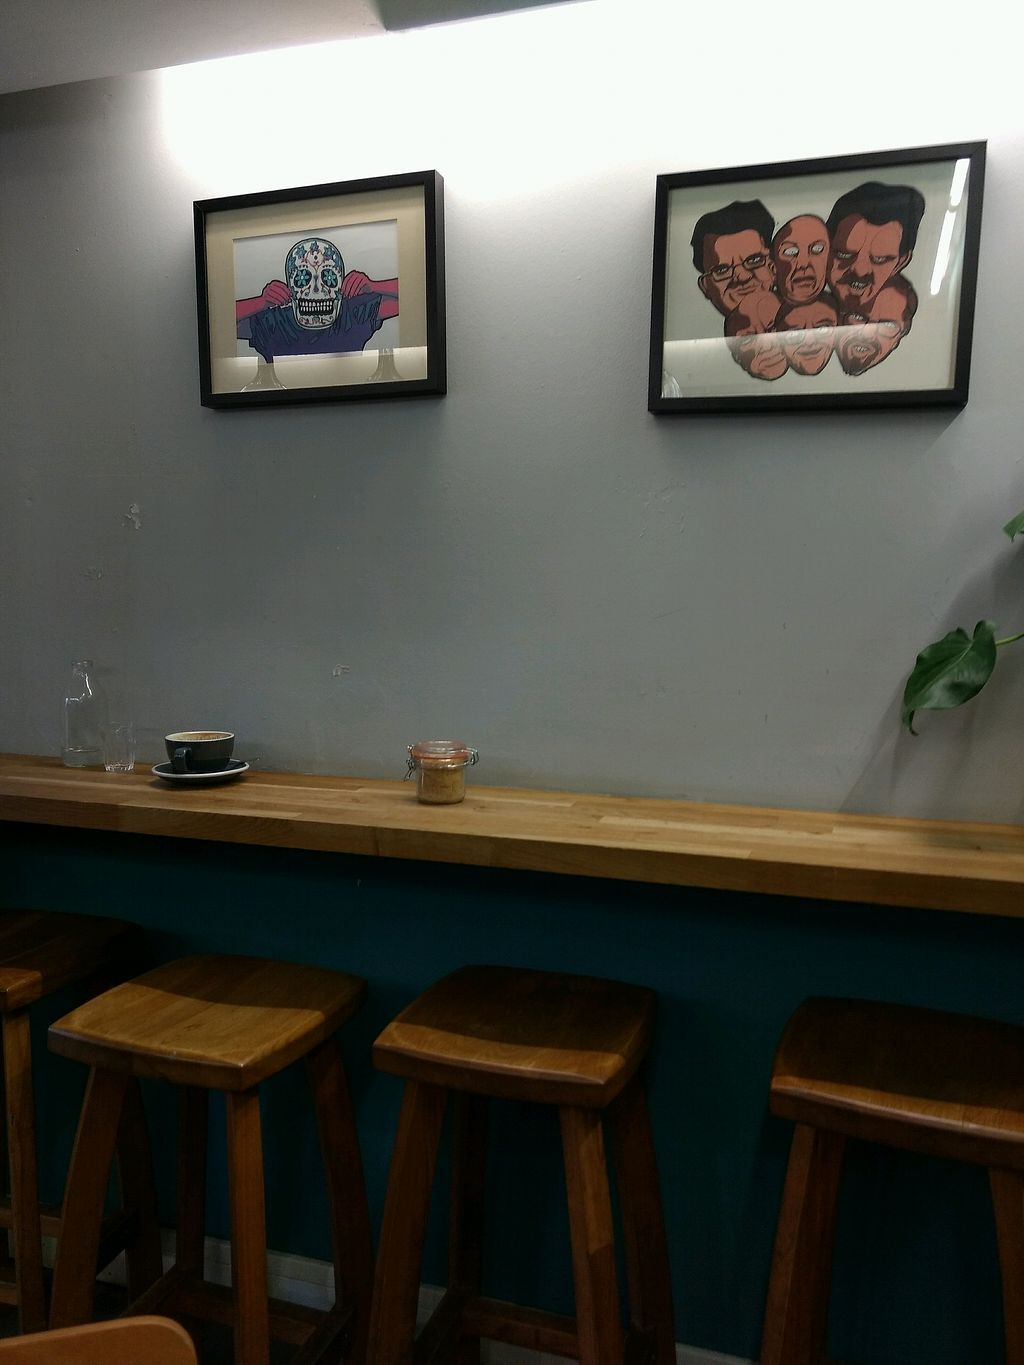 """Photo of Castello Coffee - Castle St  by <a href=""""/members/profile/craigmc"""">craigmc</a> <br/>25% of the seats <br/> January 8, 2018  - <a href='/contact/abuse/image/80362/344366'>Report</a>"""